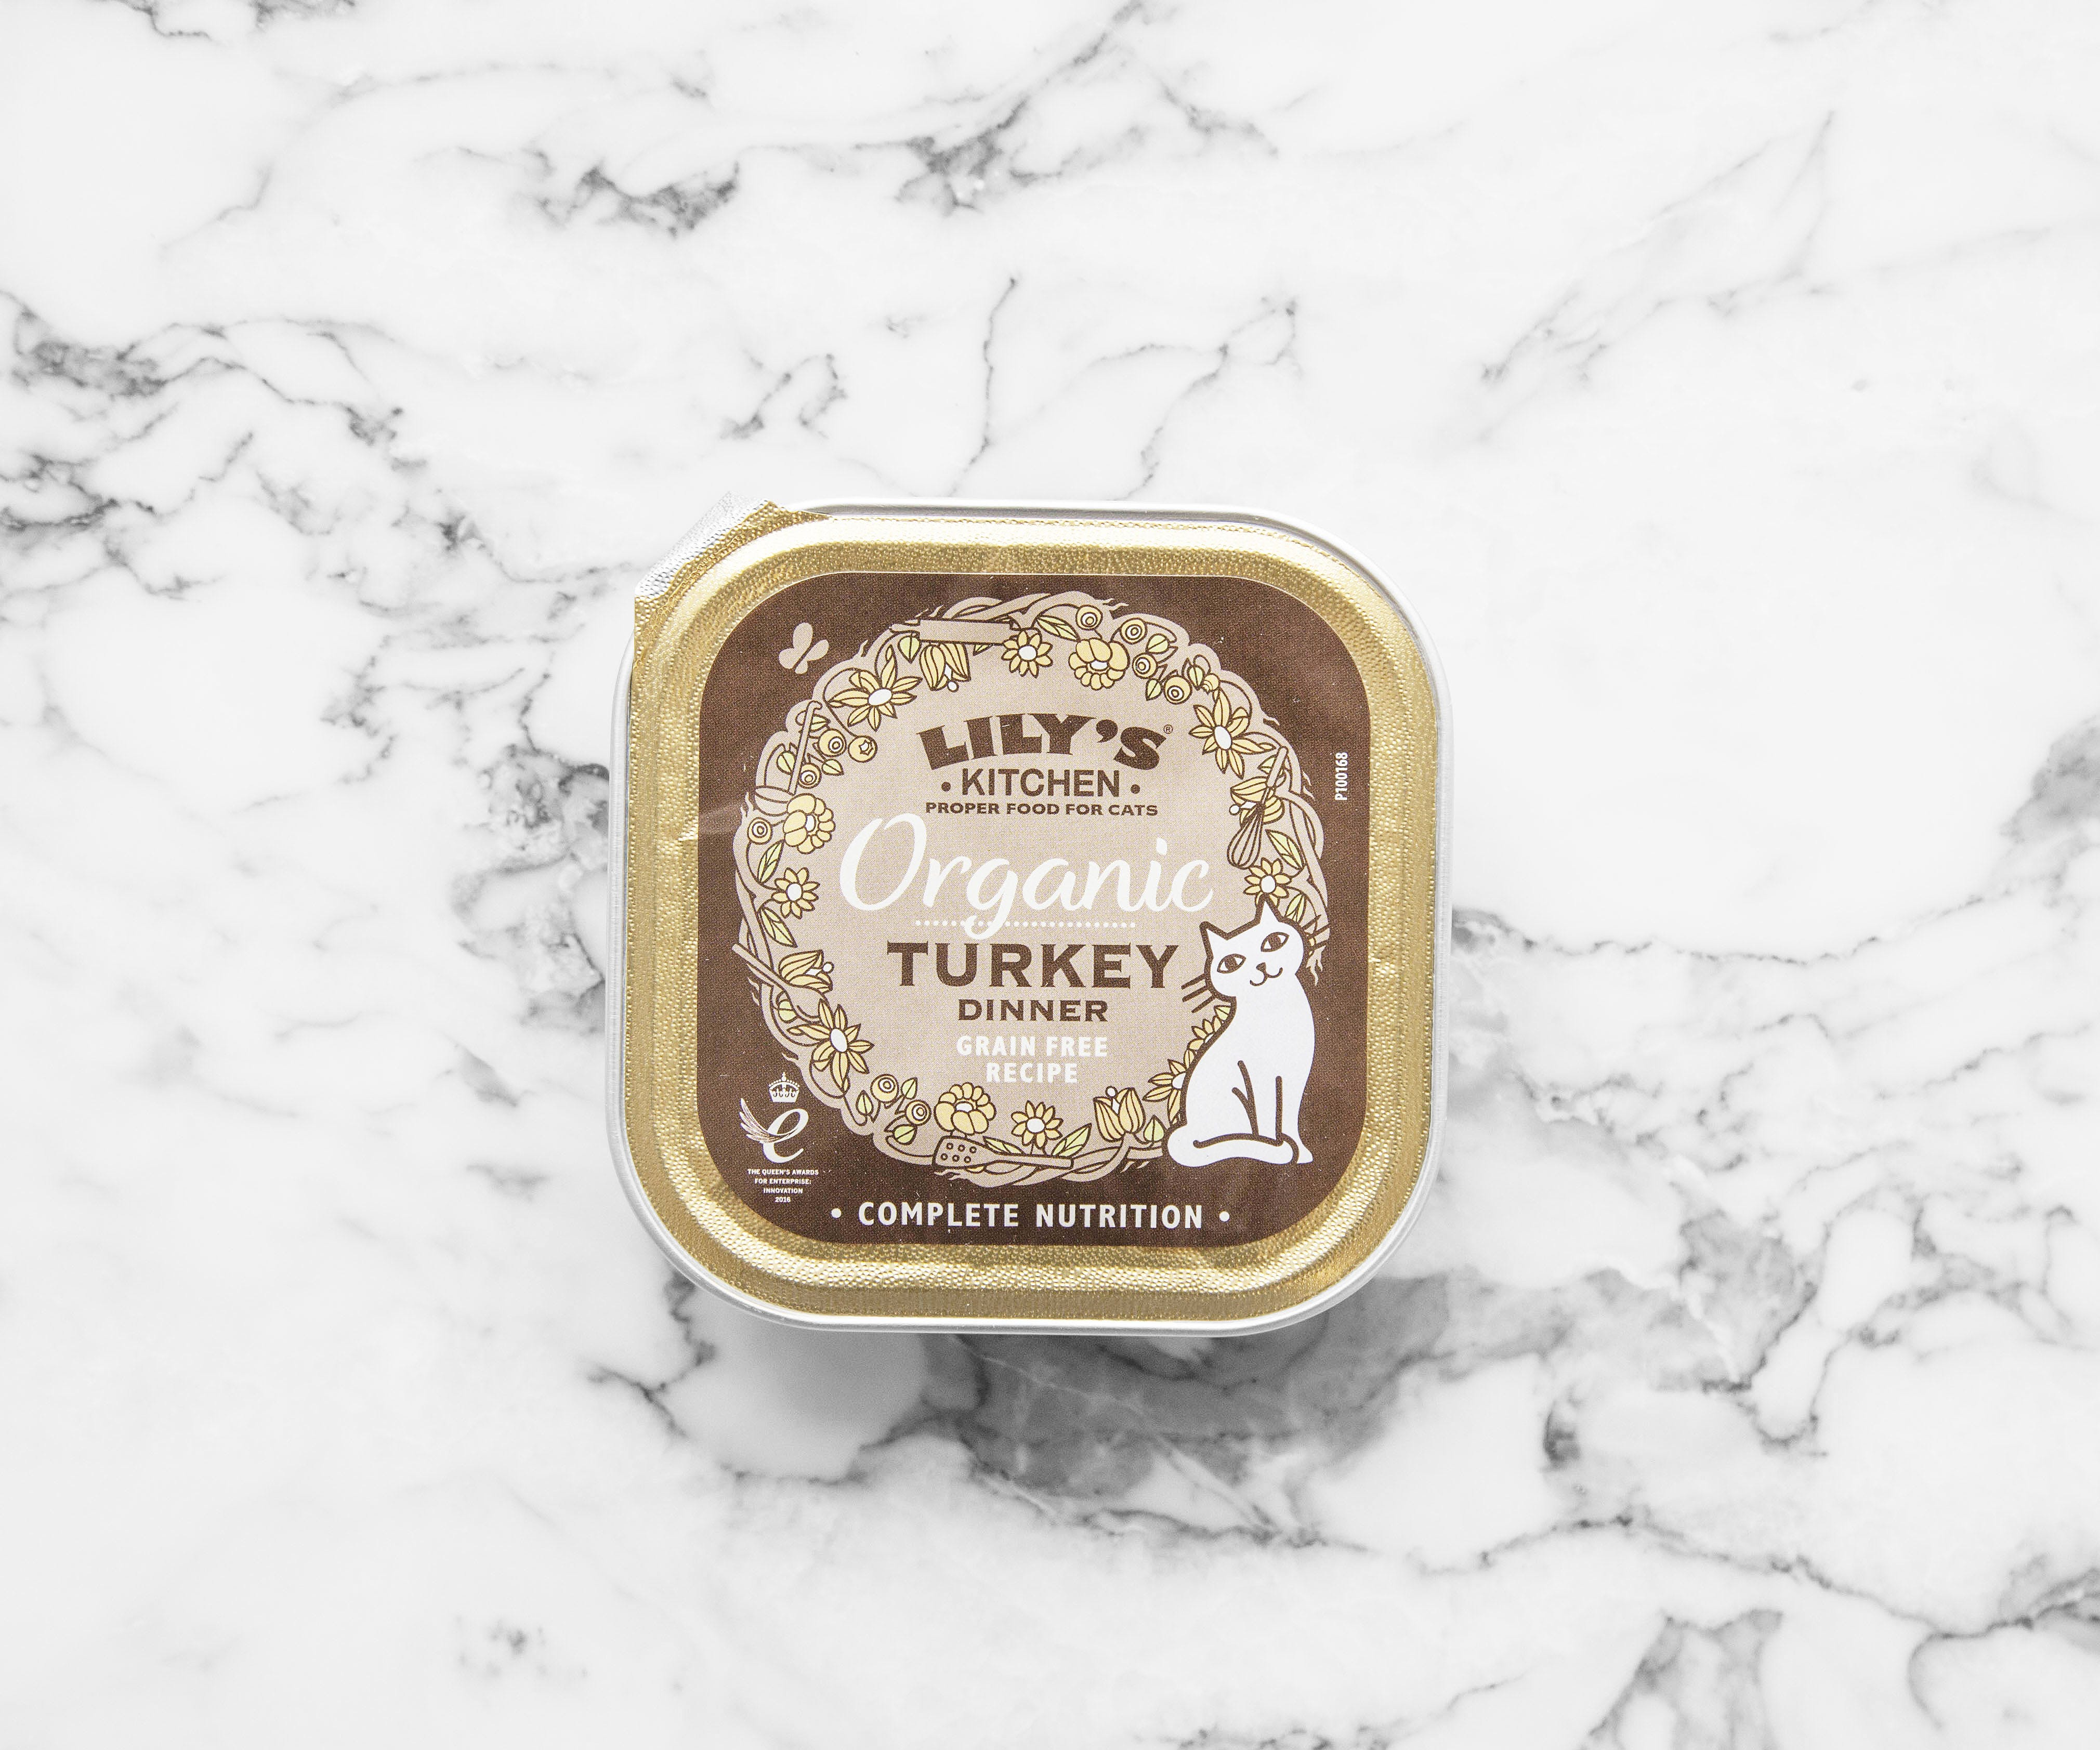 Organic Turkey Dinner for Cats